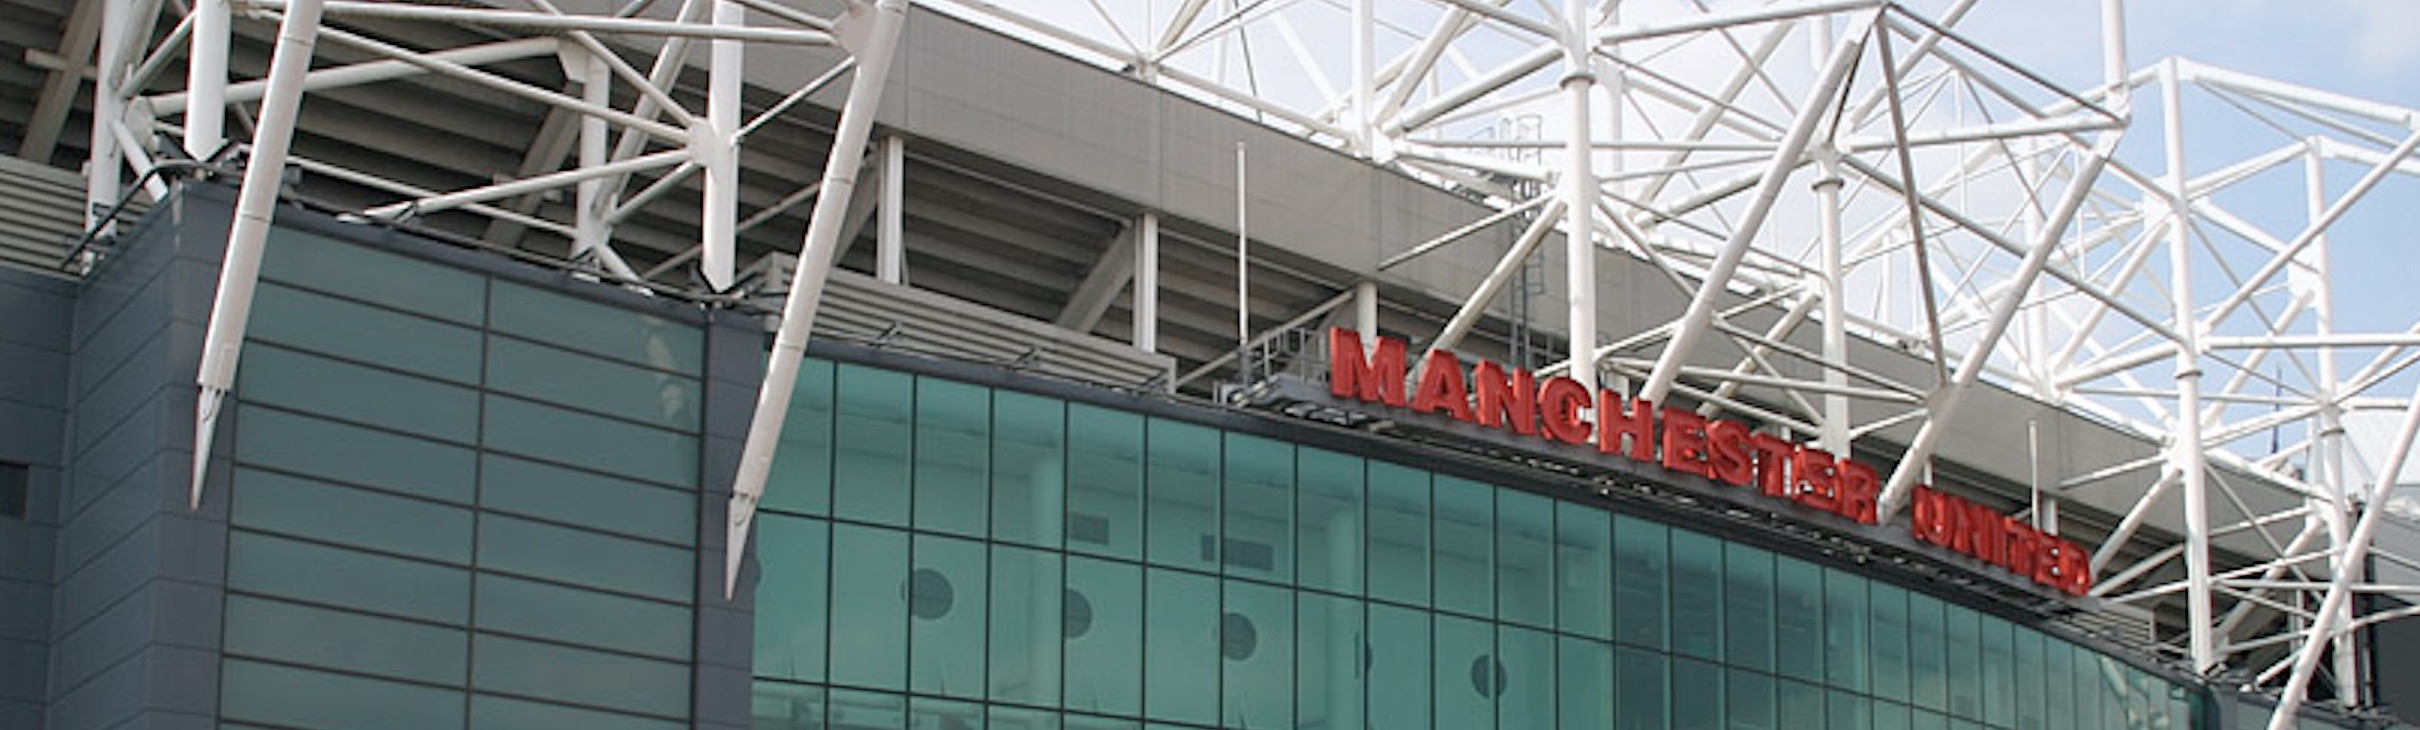 Man United V Southampton - Daytrip by Coach &Ferry